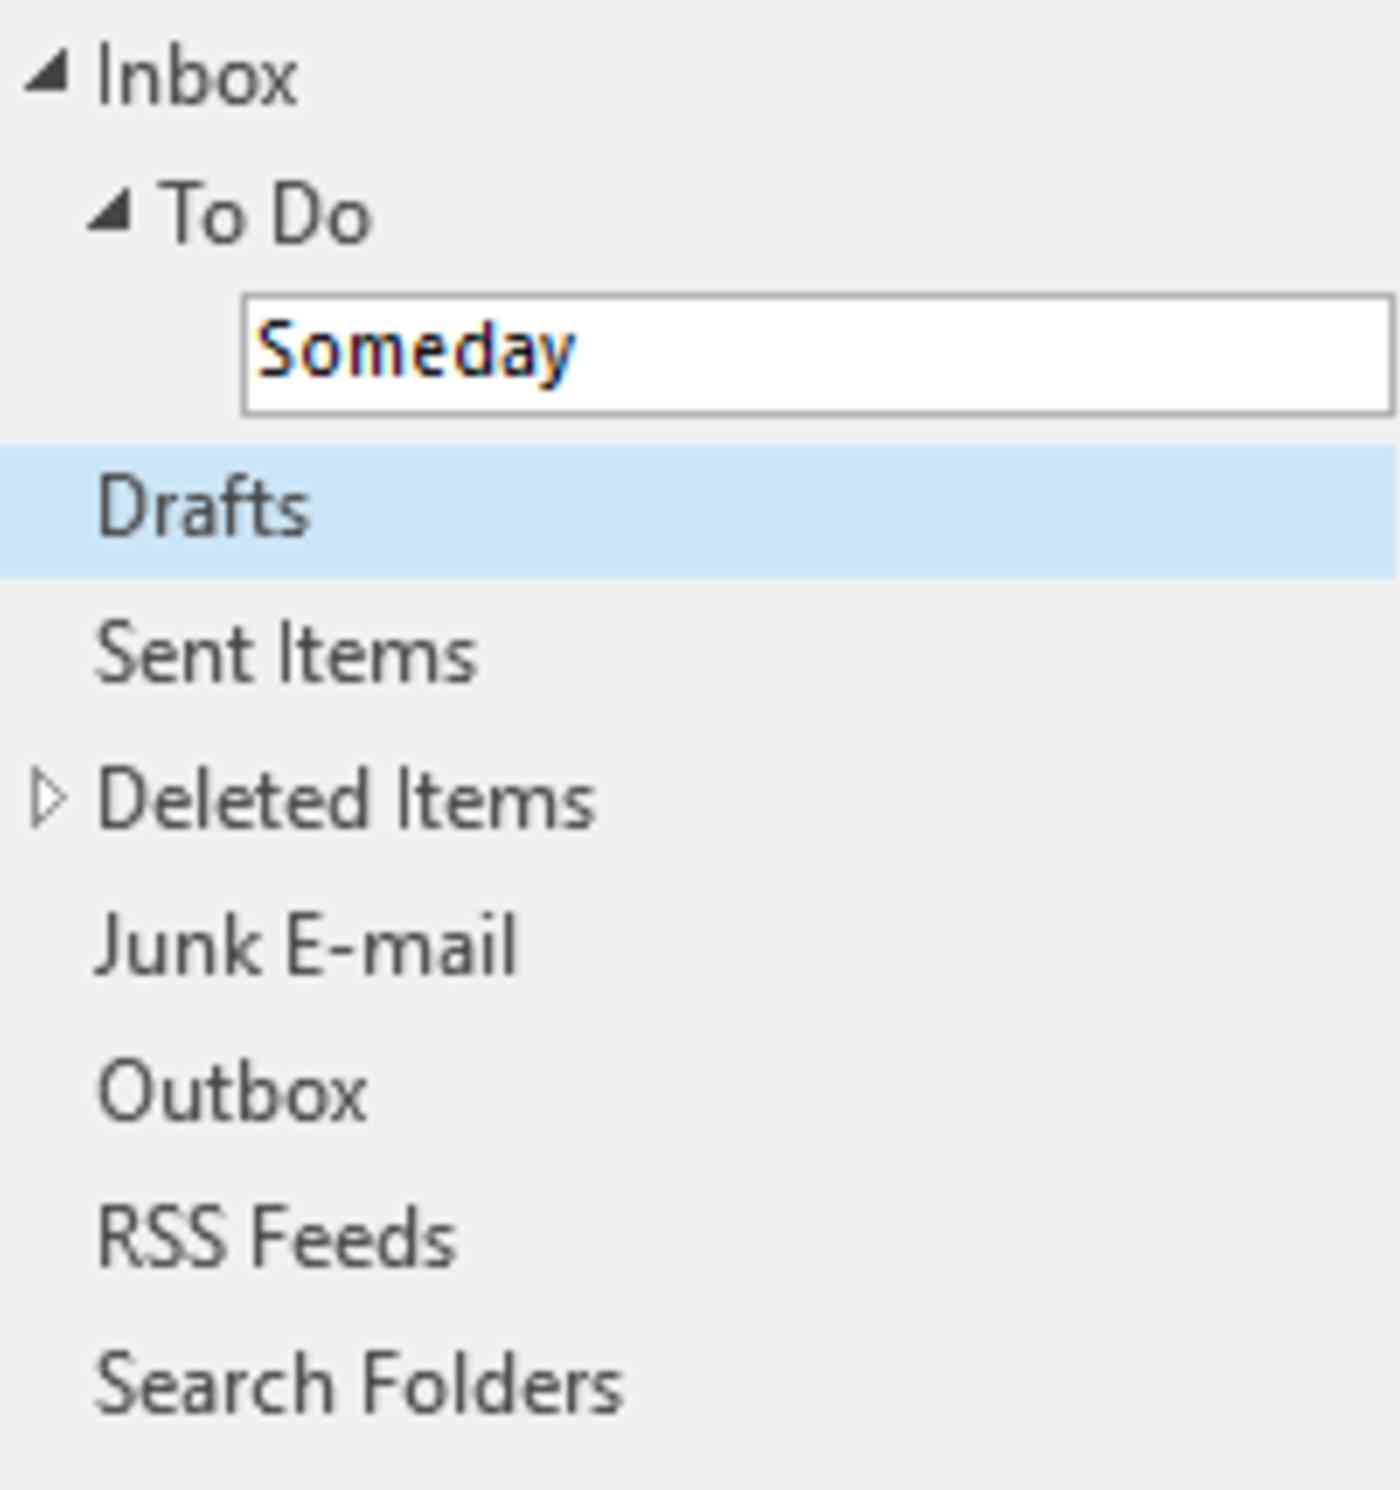 Create sub-folders in your To-Do folder in Microsoft Outlook